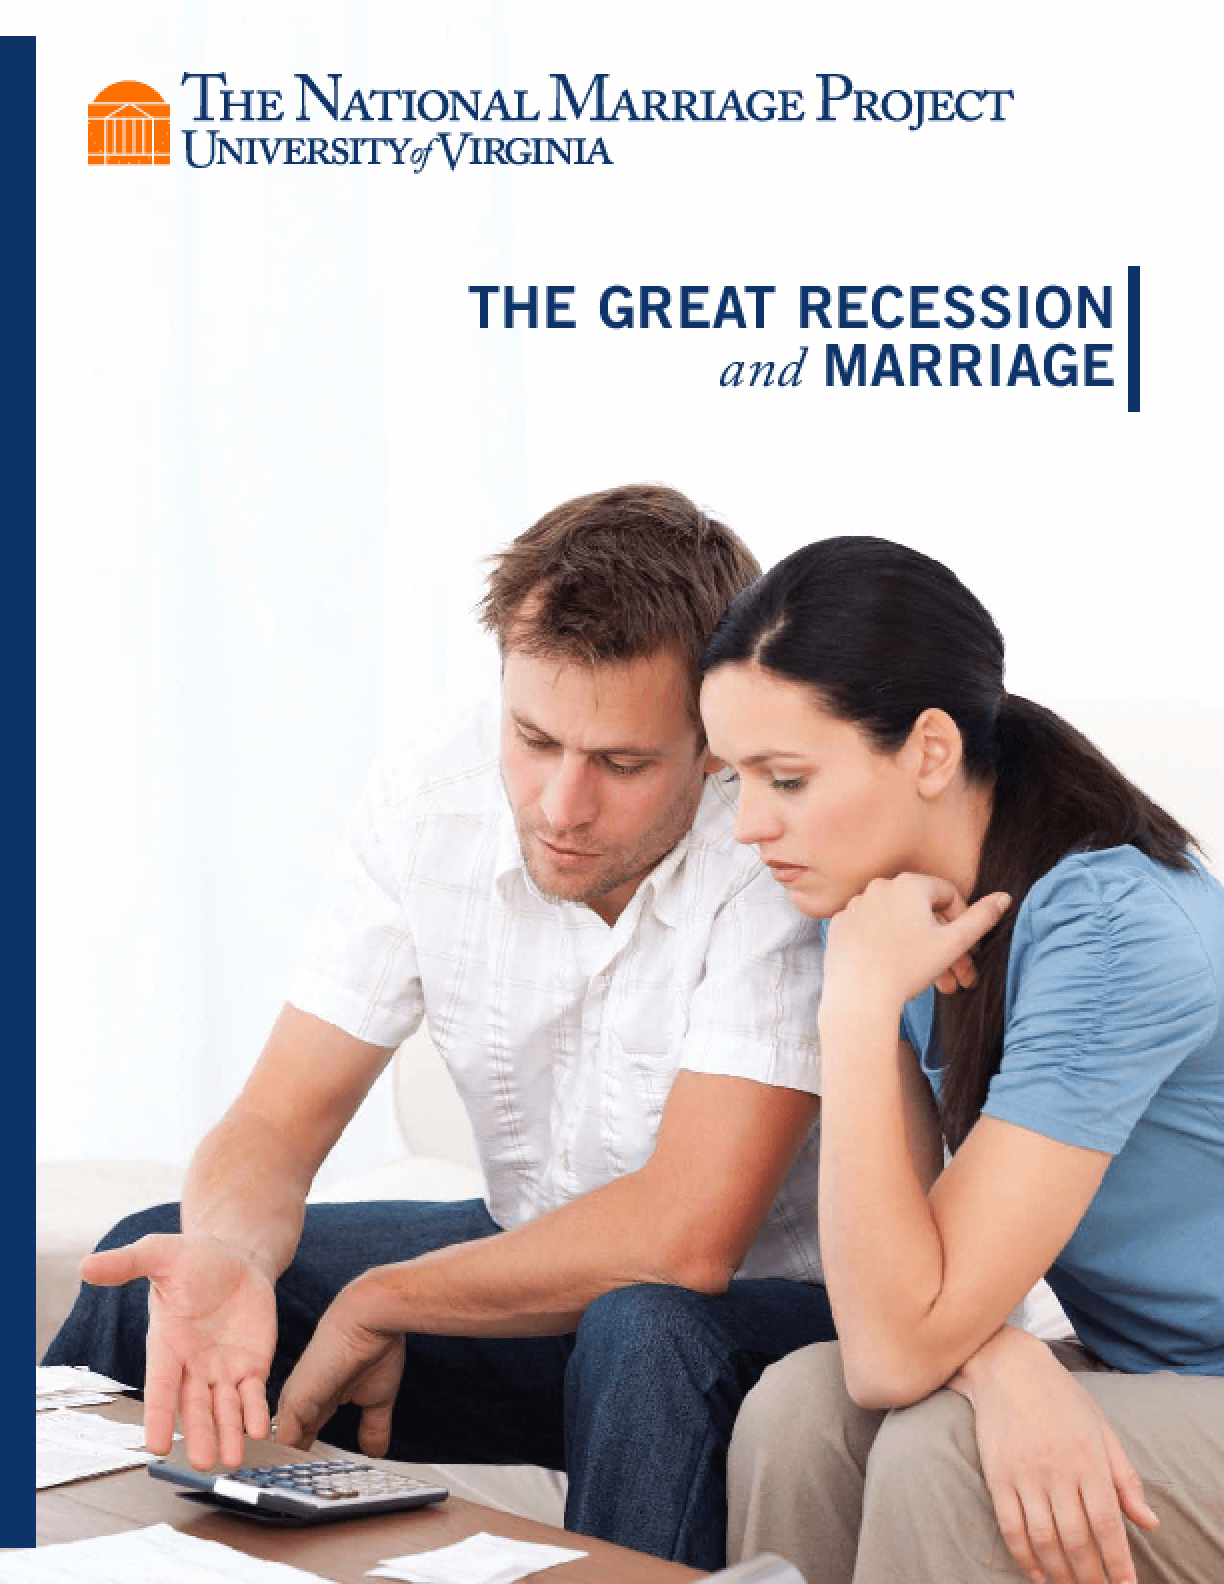 The Great Recession and Marriage